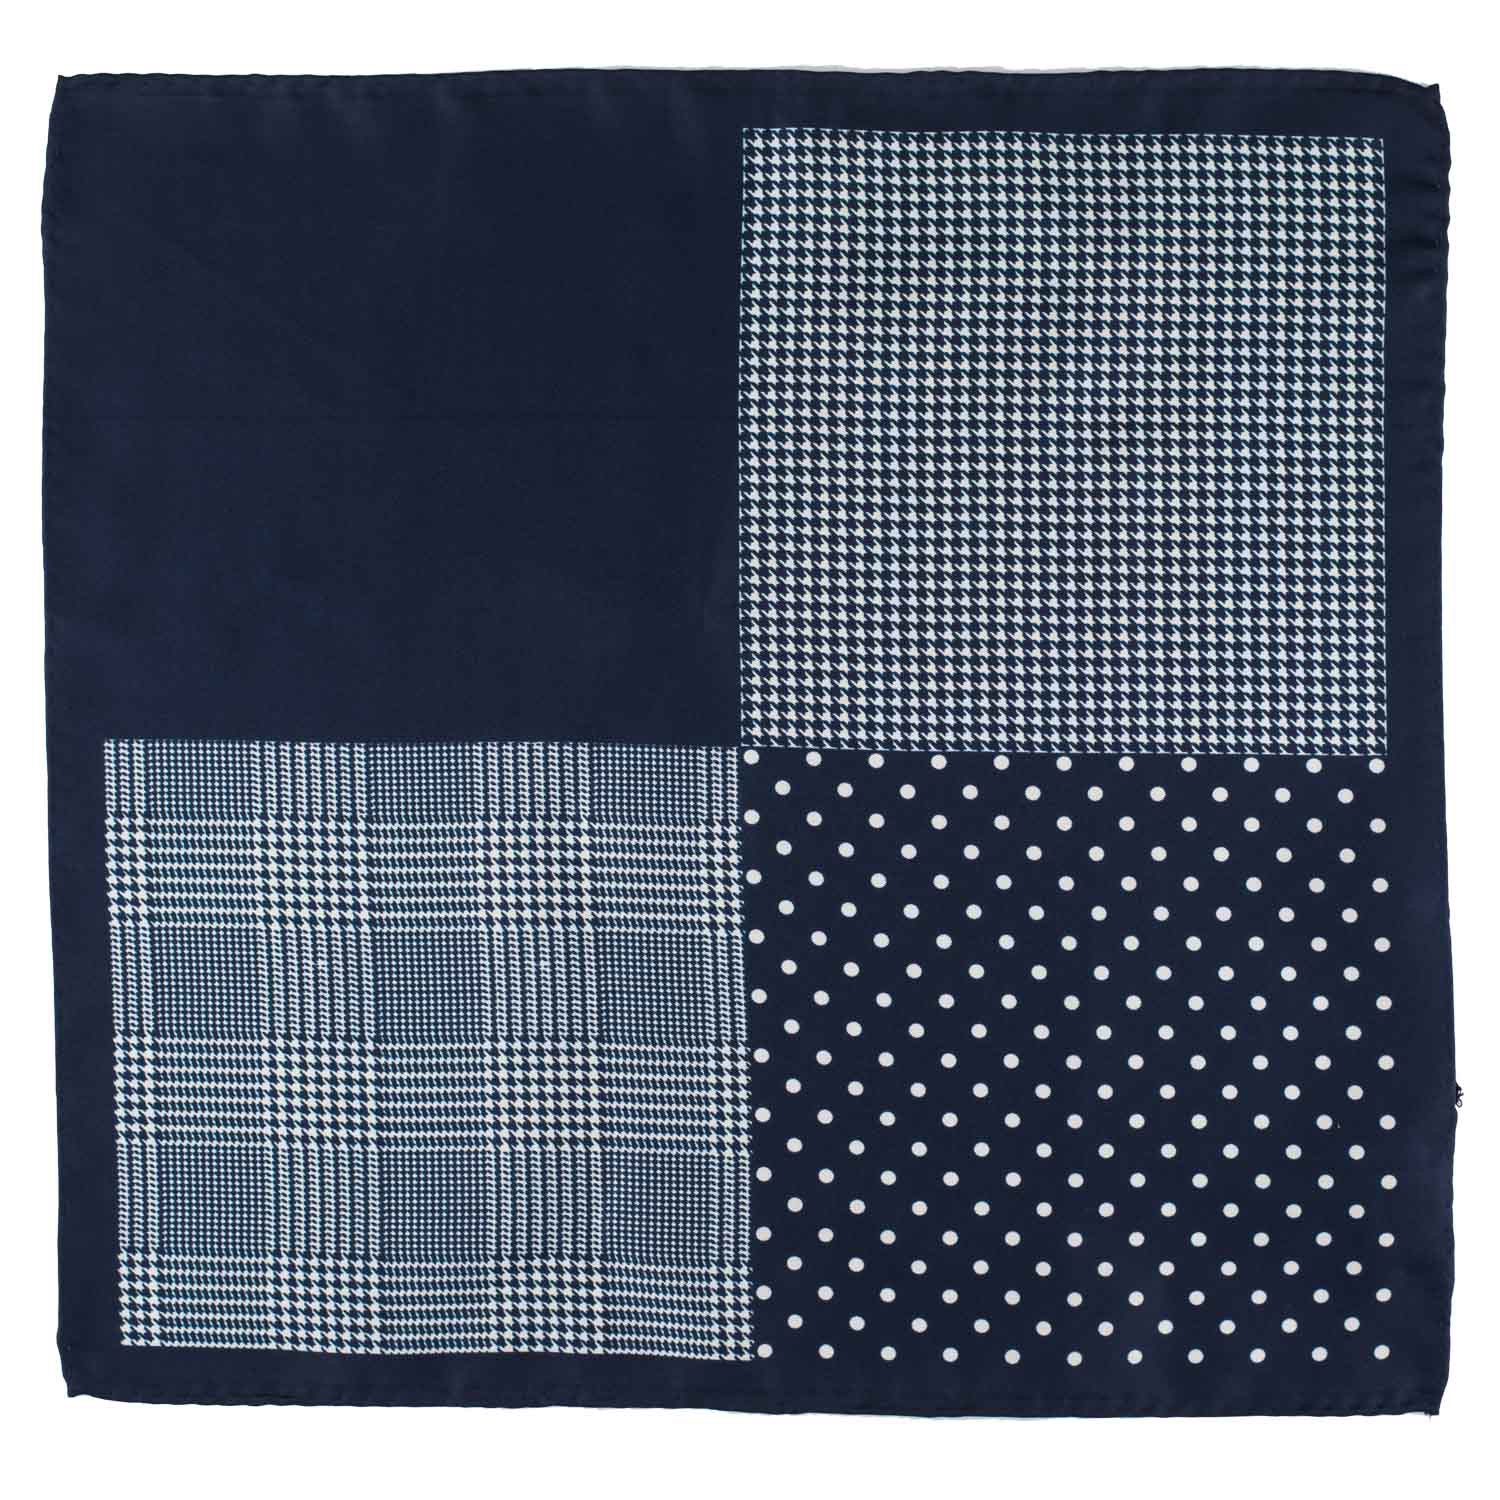 Four Square Checkerd White and Blue Silk Pocket Square For Men By The Tie Hub